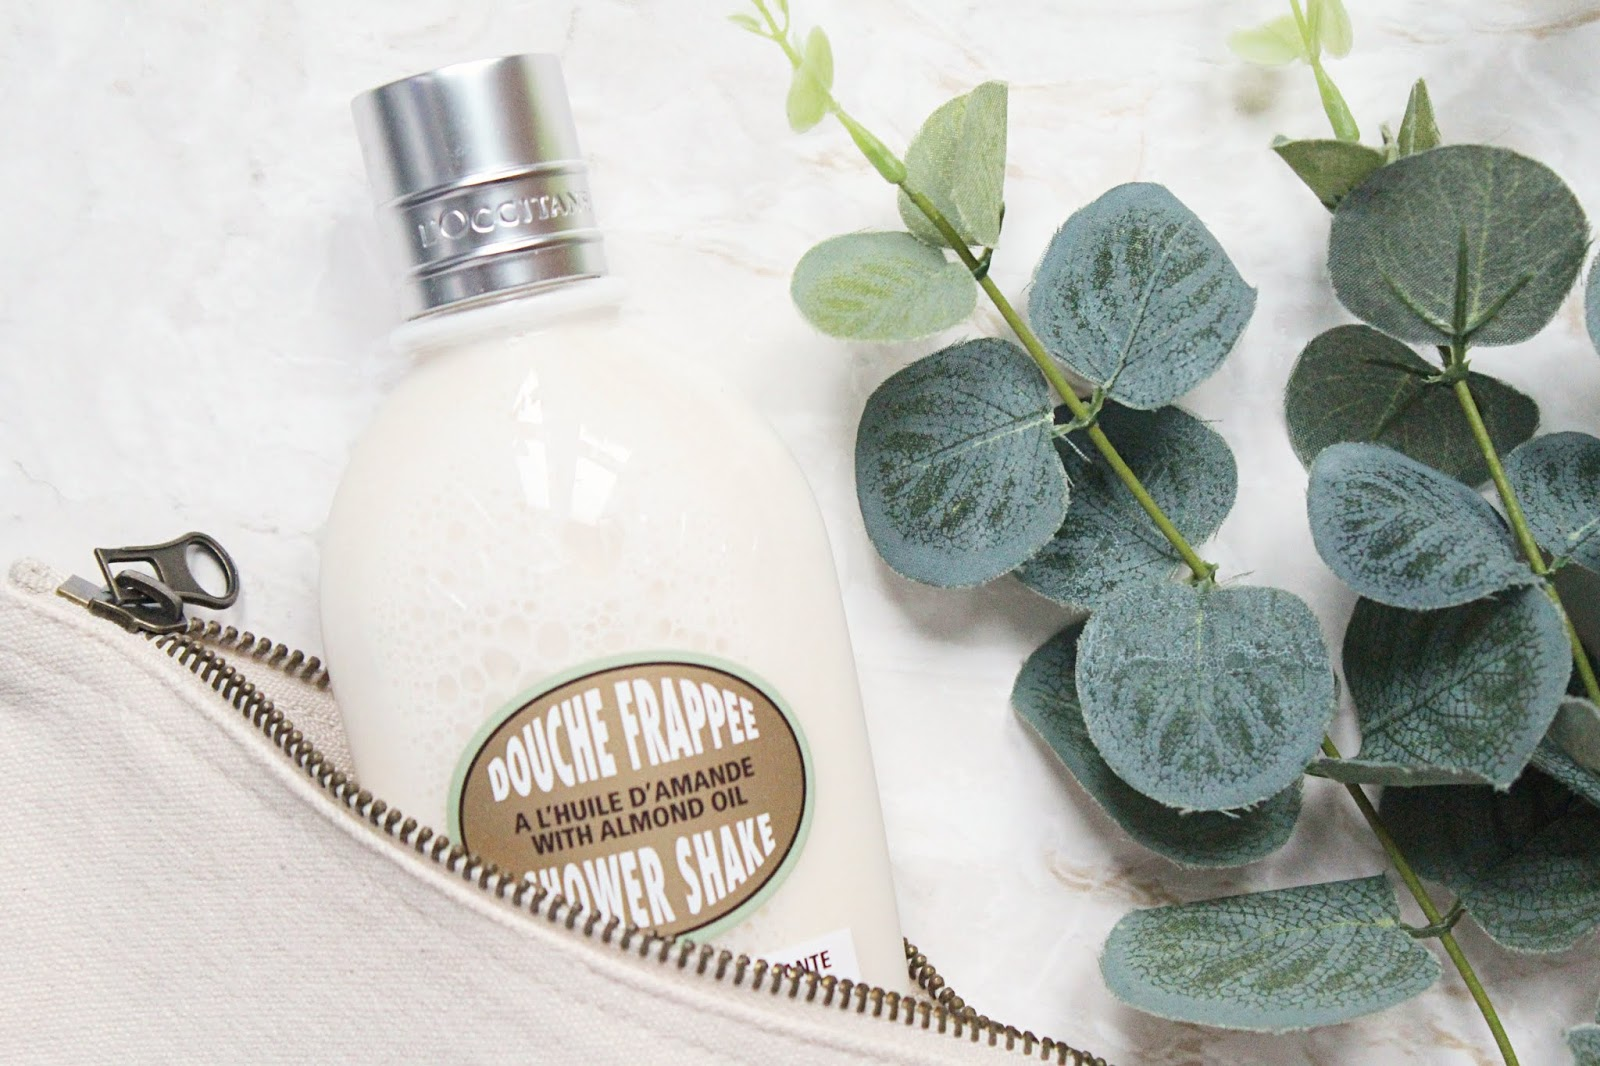 L'Occitane Almond Shower Shake